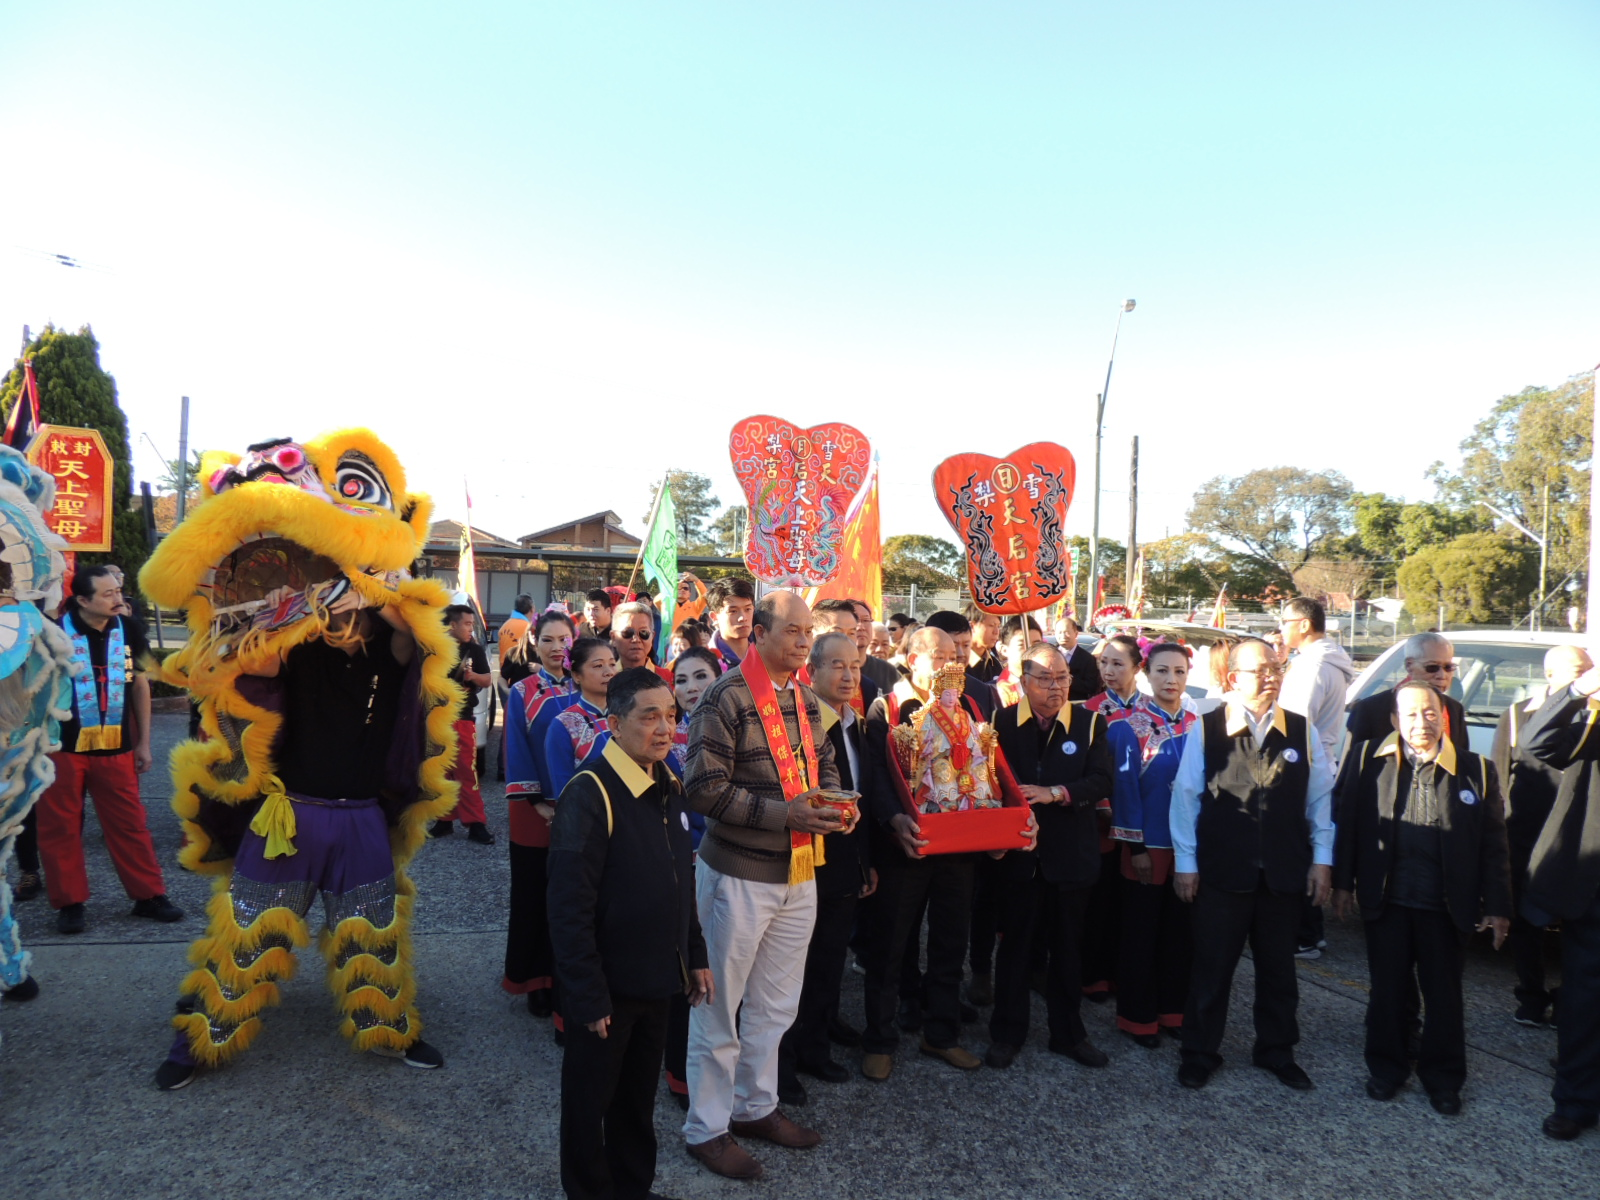 Thean Hou Temple in New Zealand celebrates the birth of Mazu and the benefactors sincerely pay homage to God's blessings | Australia Chinatown Community News